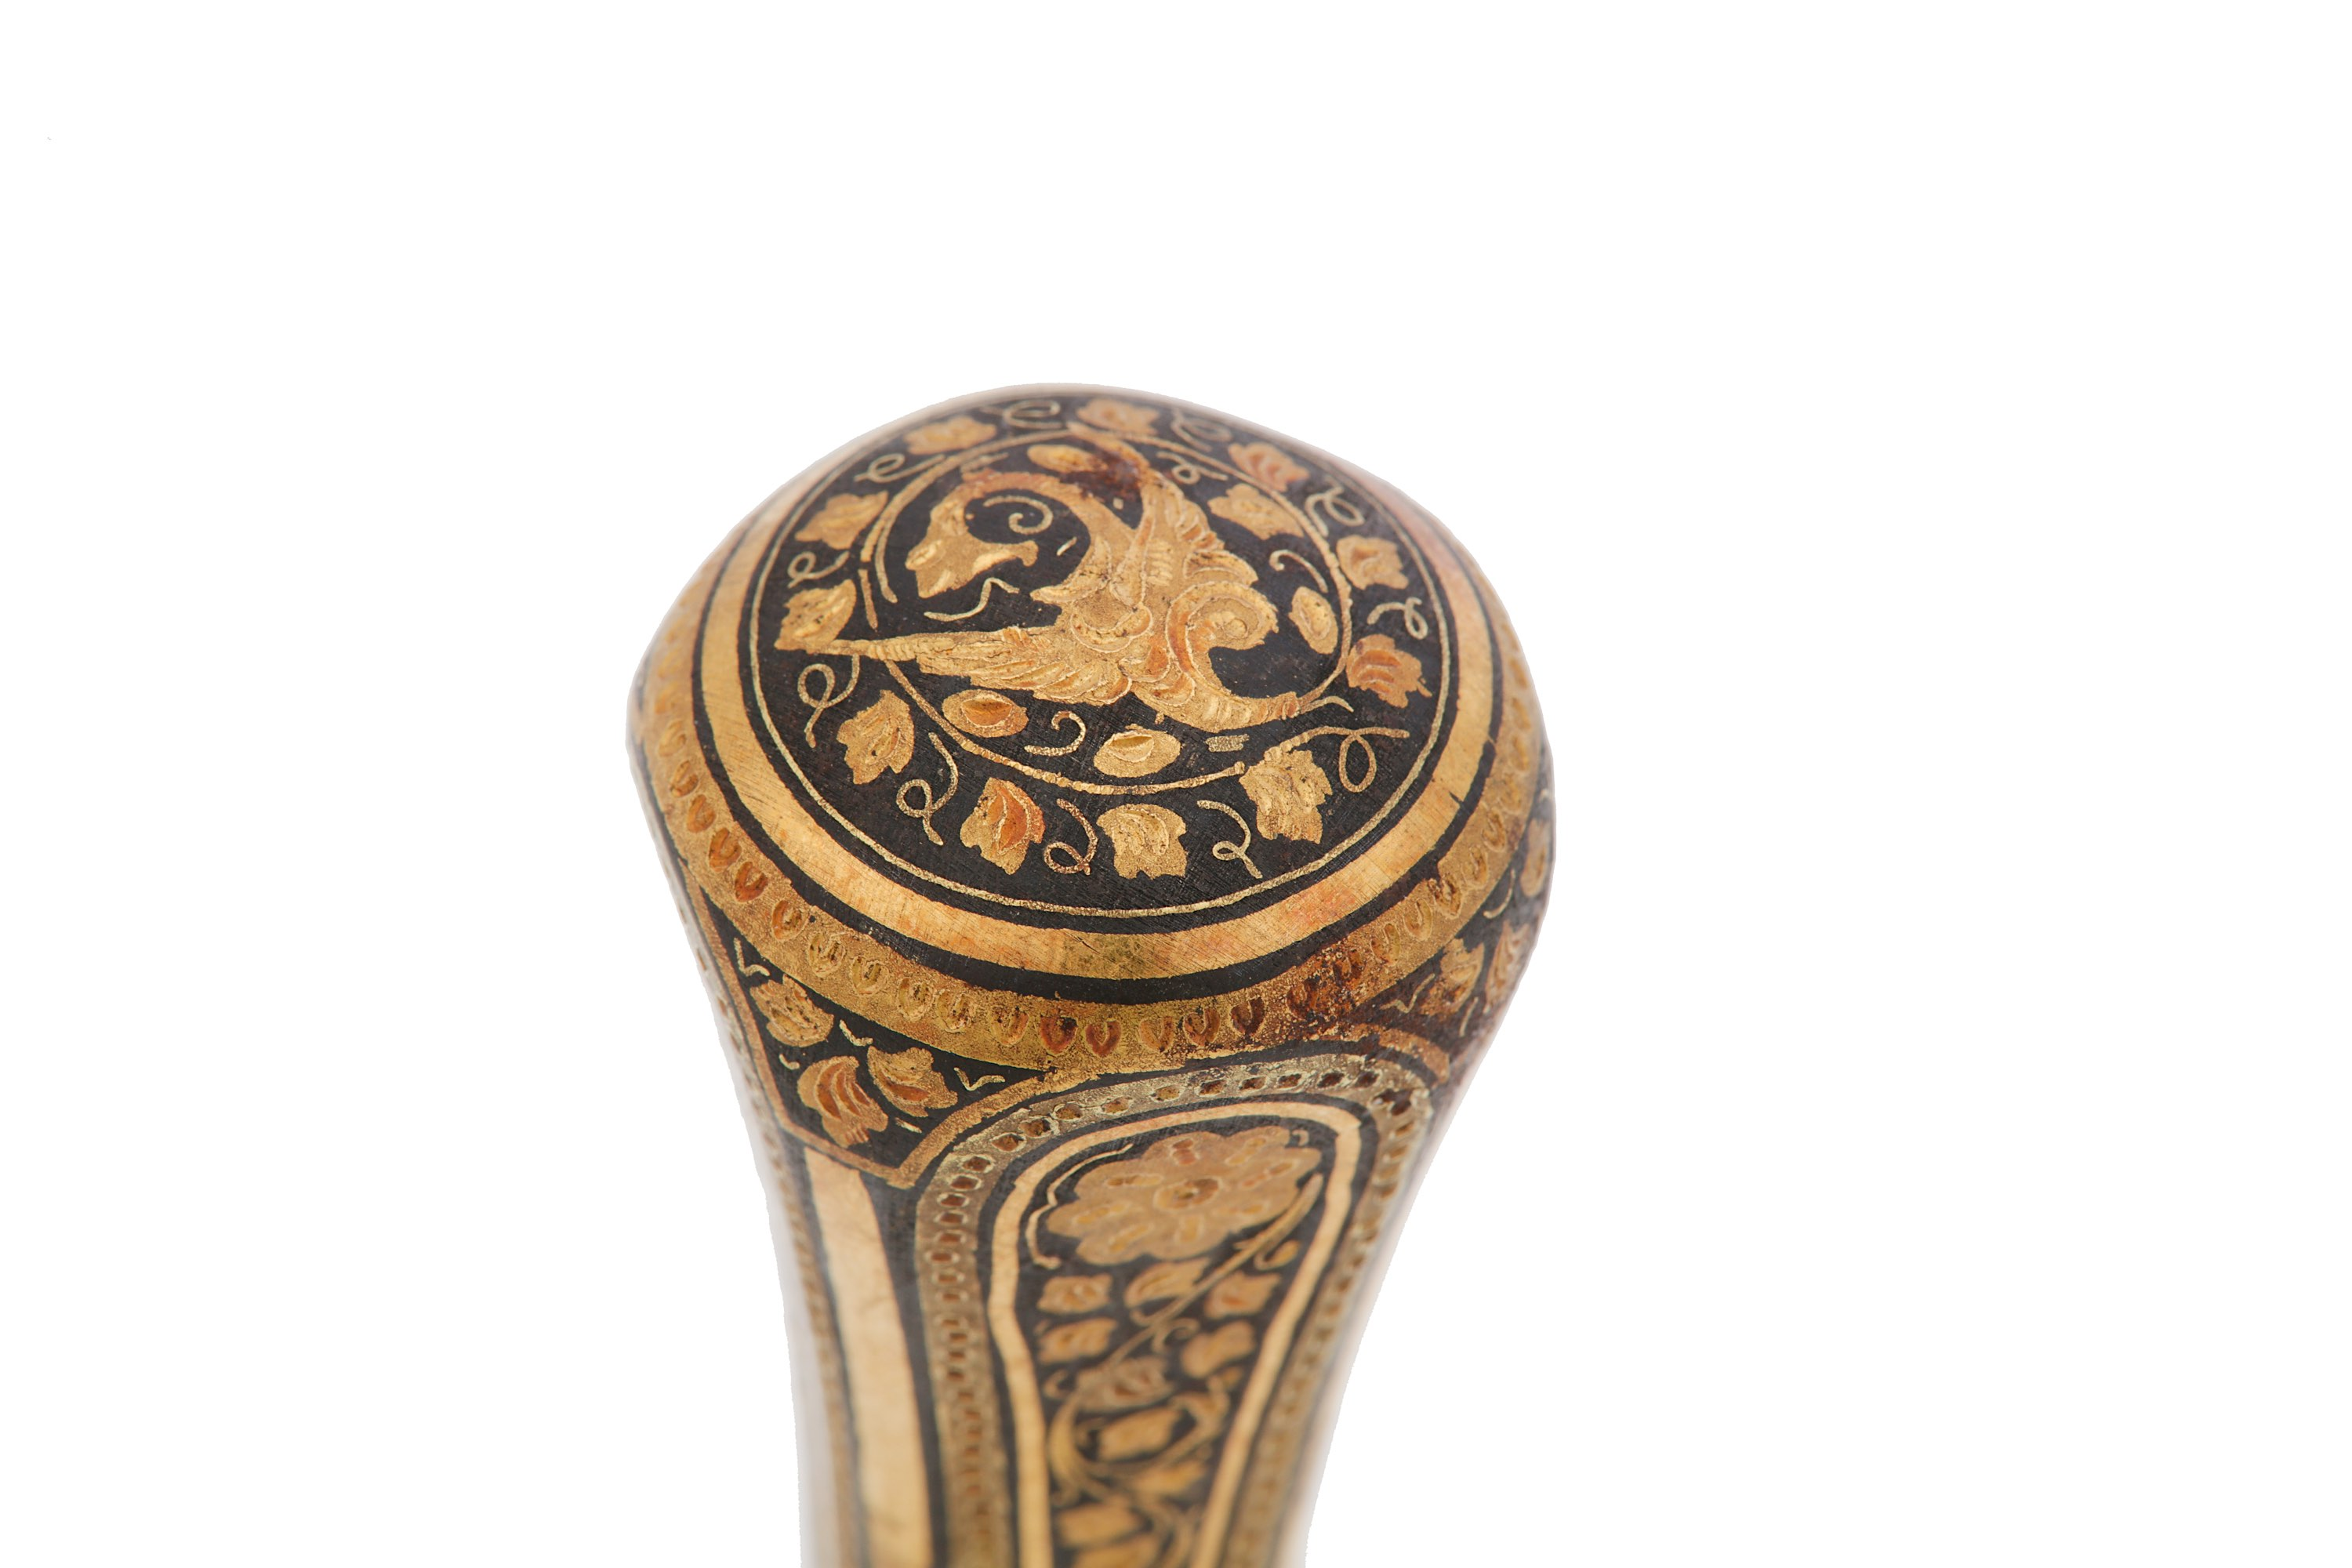 Lot 36 - Two Damascened iron and gold inlay walking cane handles, probably 19th century Middle eastern